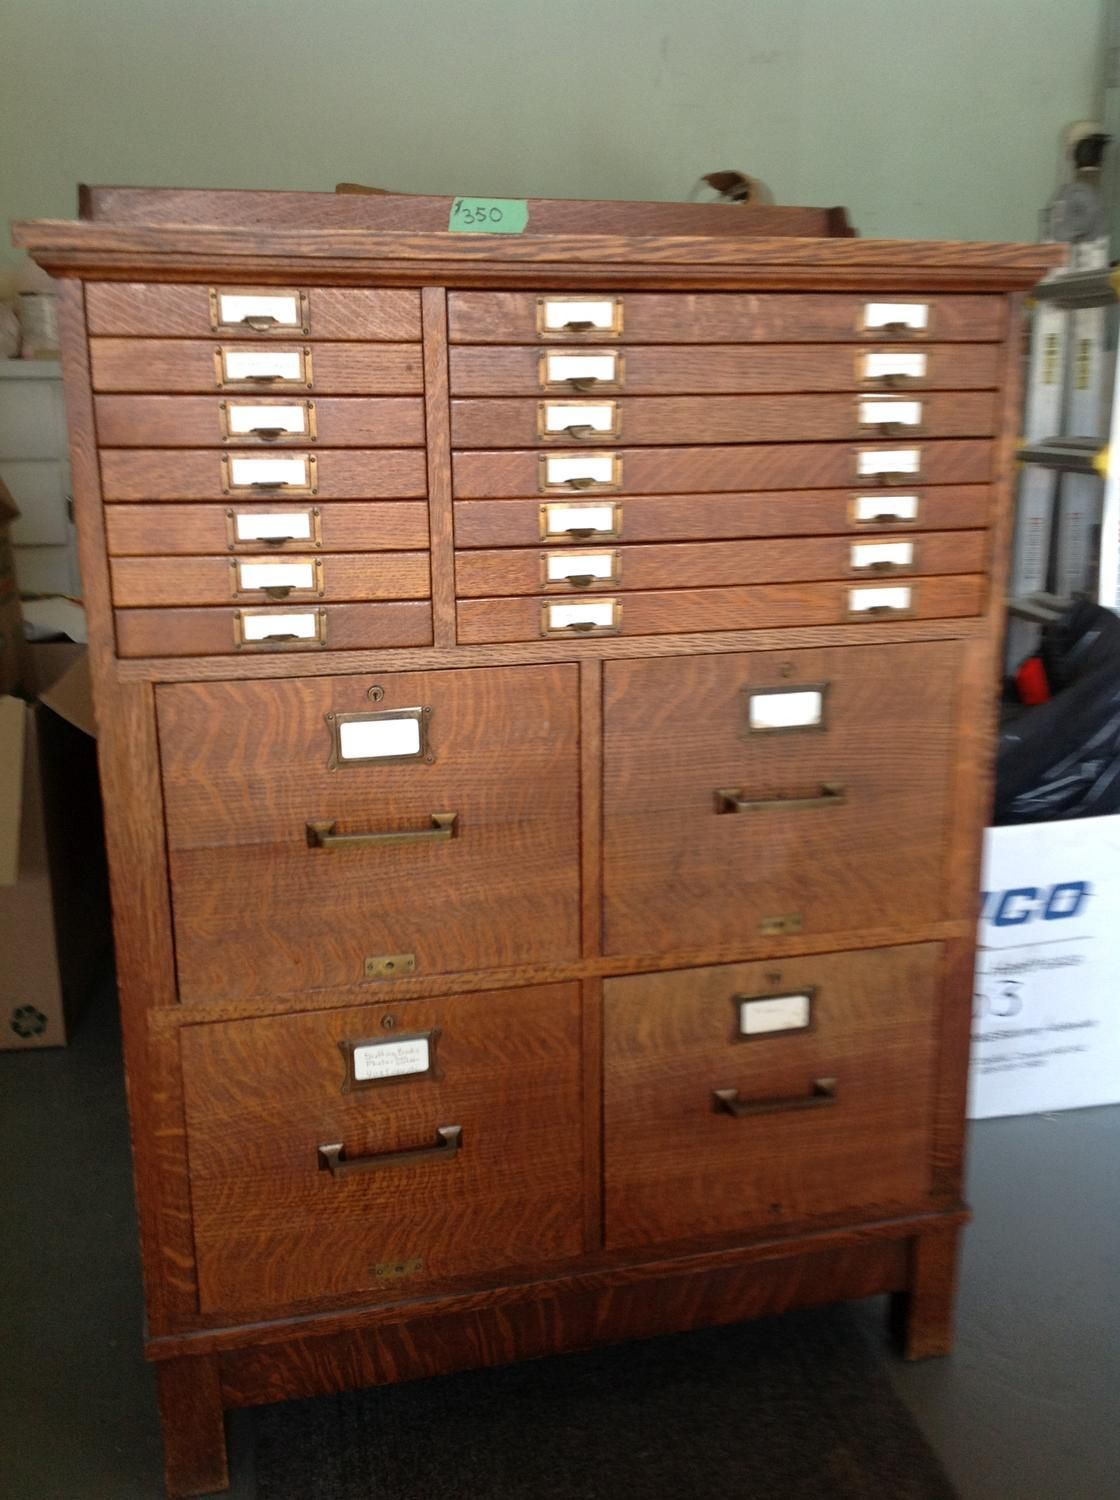 For Sale: Unique Antique Filing Cabinet - OAK filing cabinet, never been  refinished. Four legal size drawers and 16 paper supply drawers. One of a  kind. - Unique Antique Filing Cabinet Brass Monkey Filing Cabinet